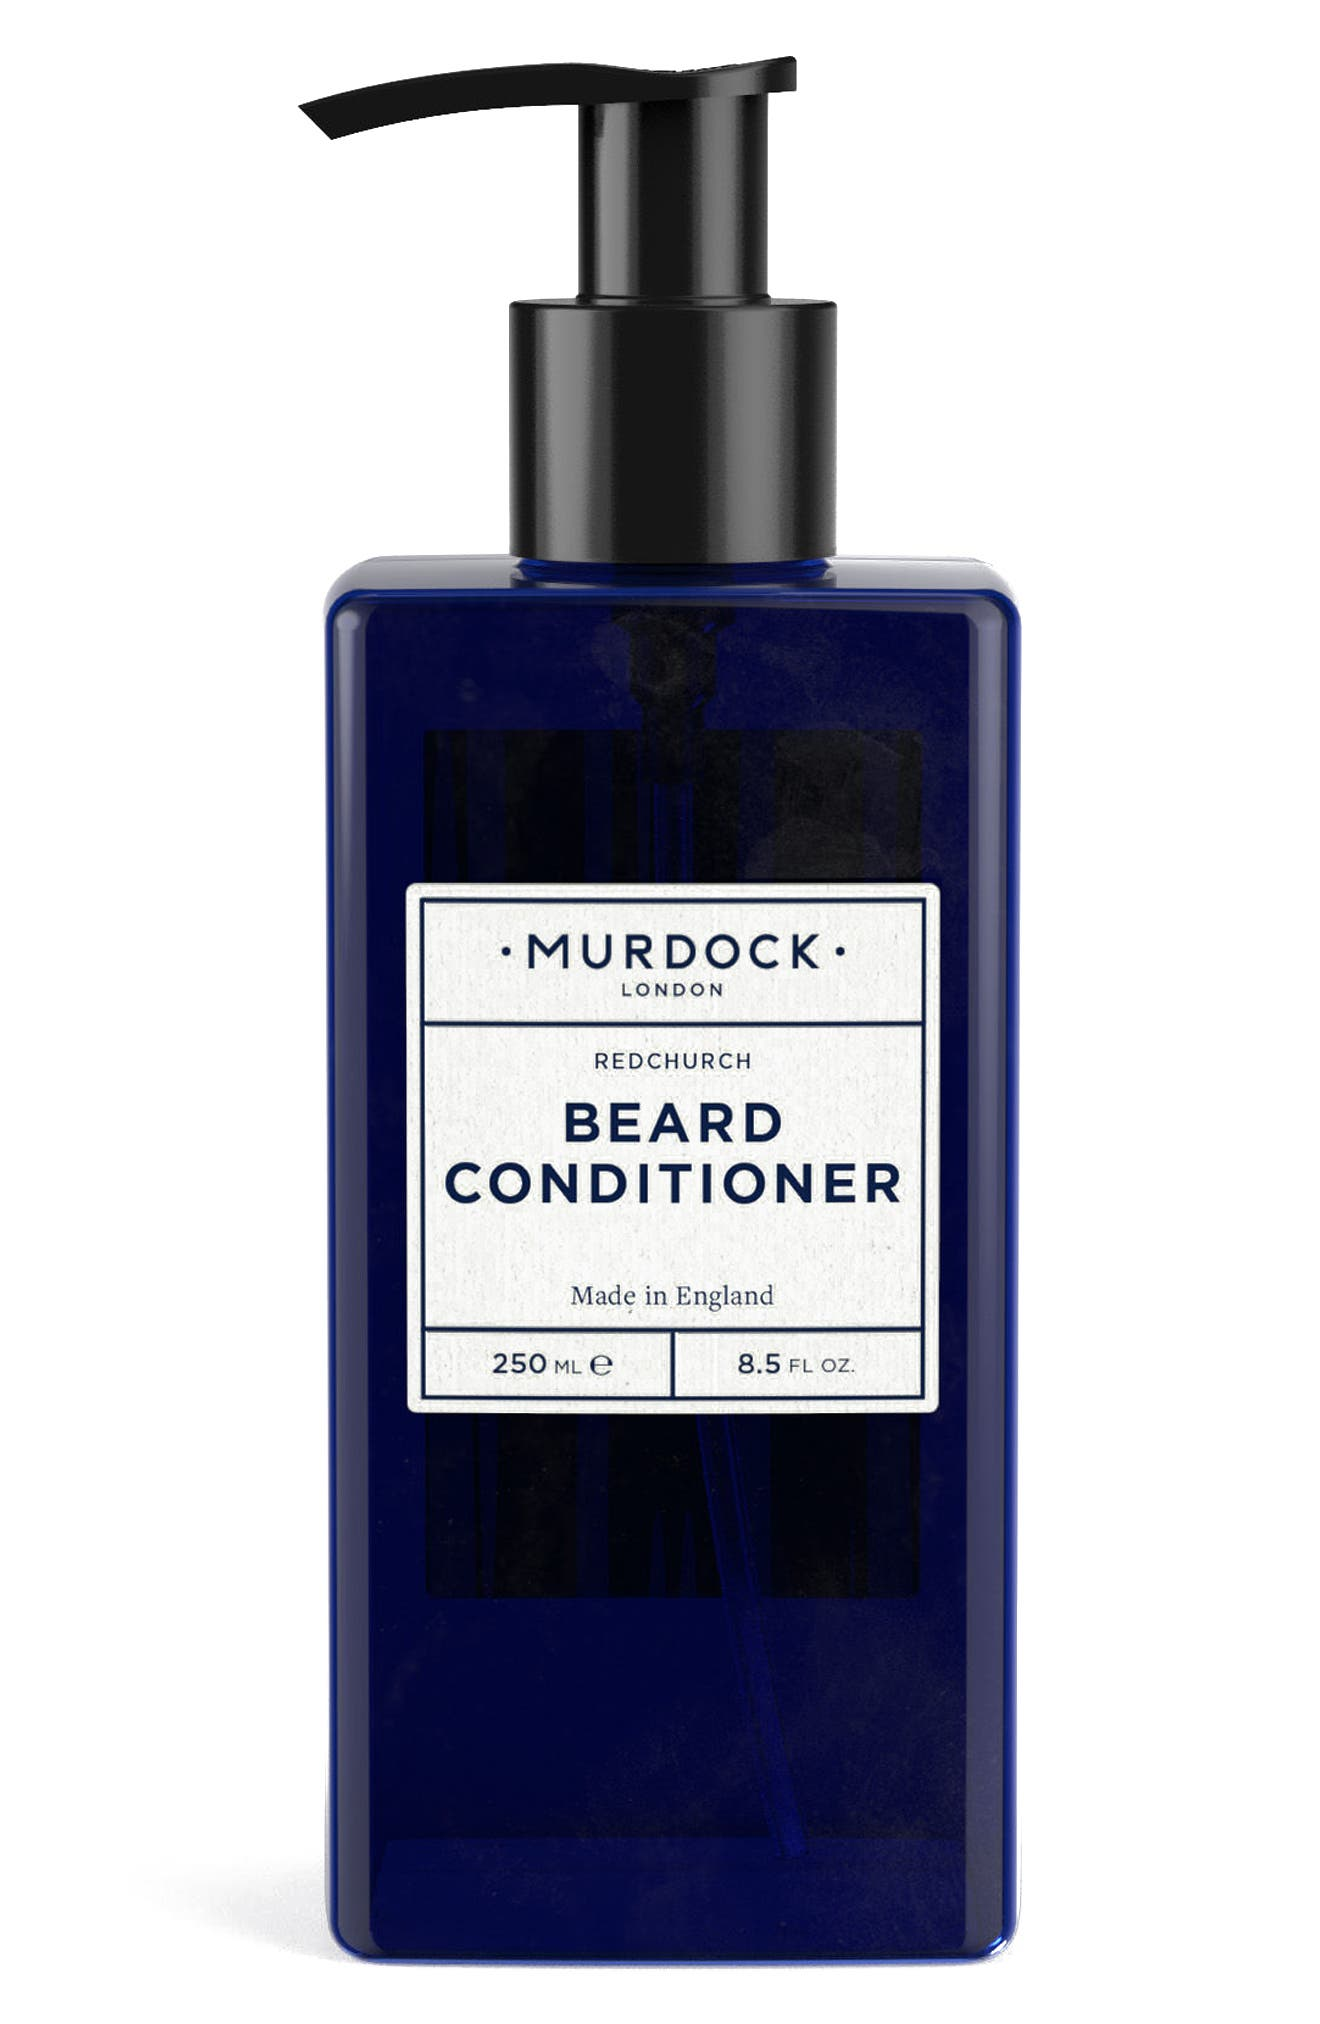 Murdock London Beard Conditioner (Nordstrom Exclusive)